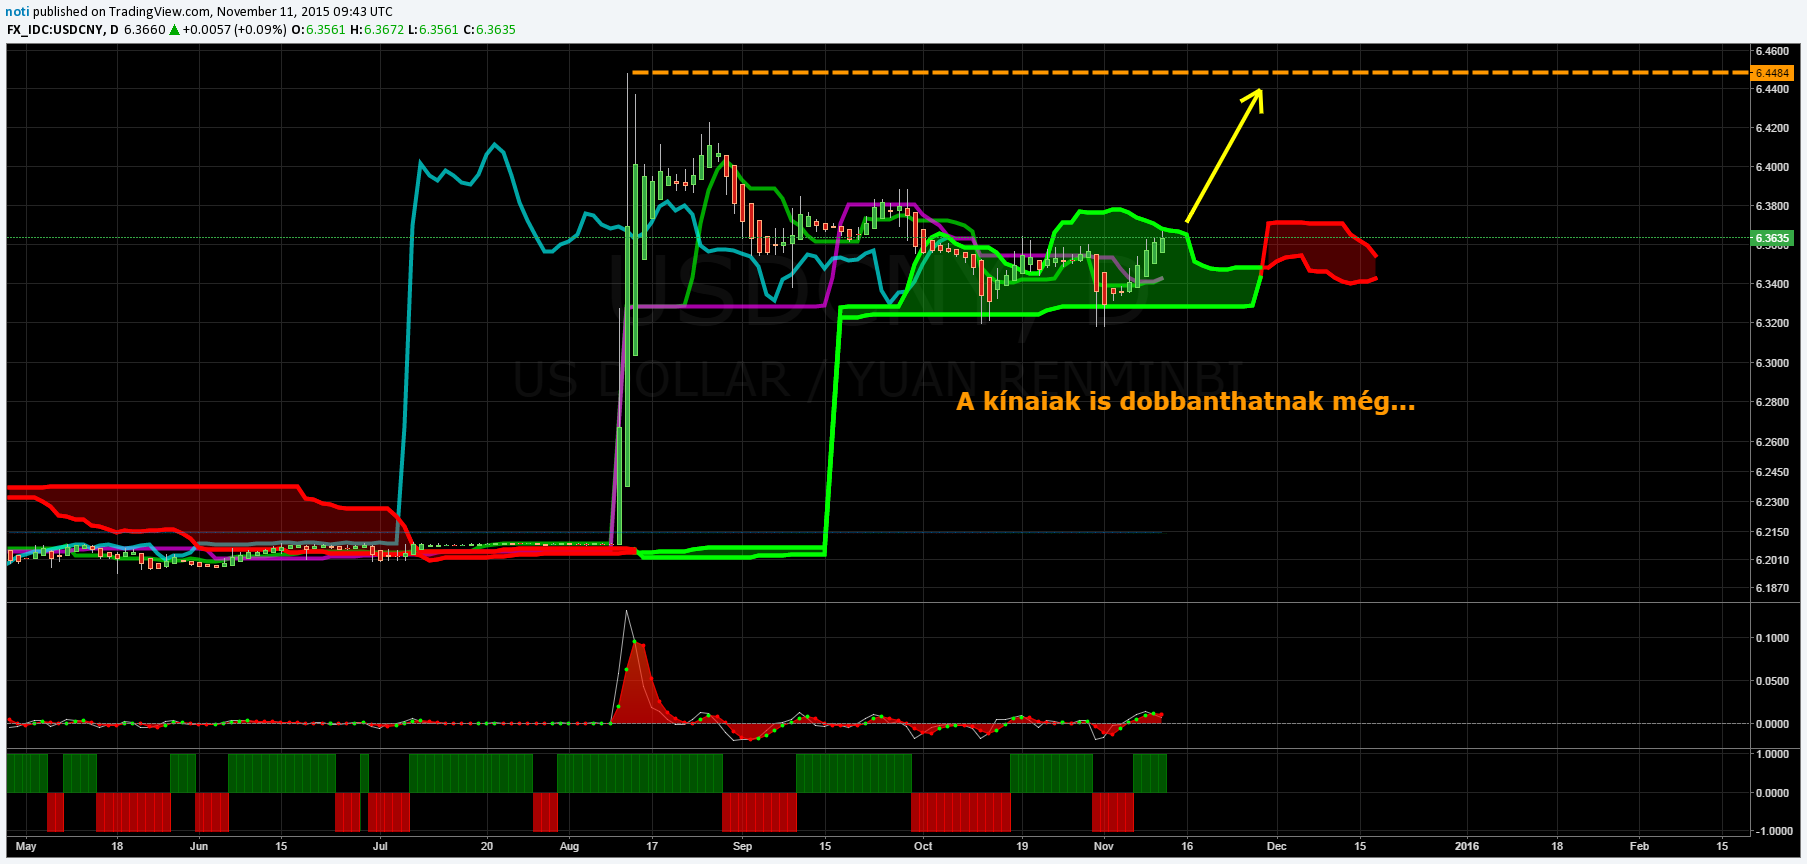 usdcny20151116.png